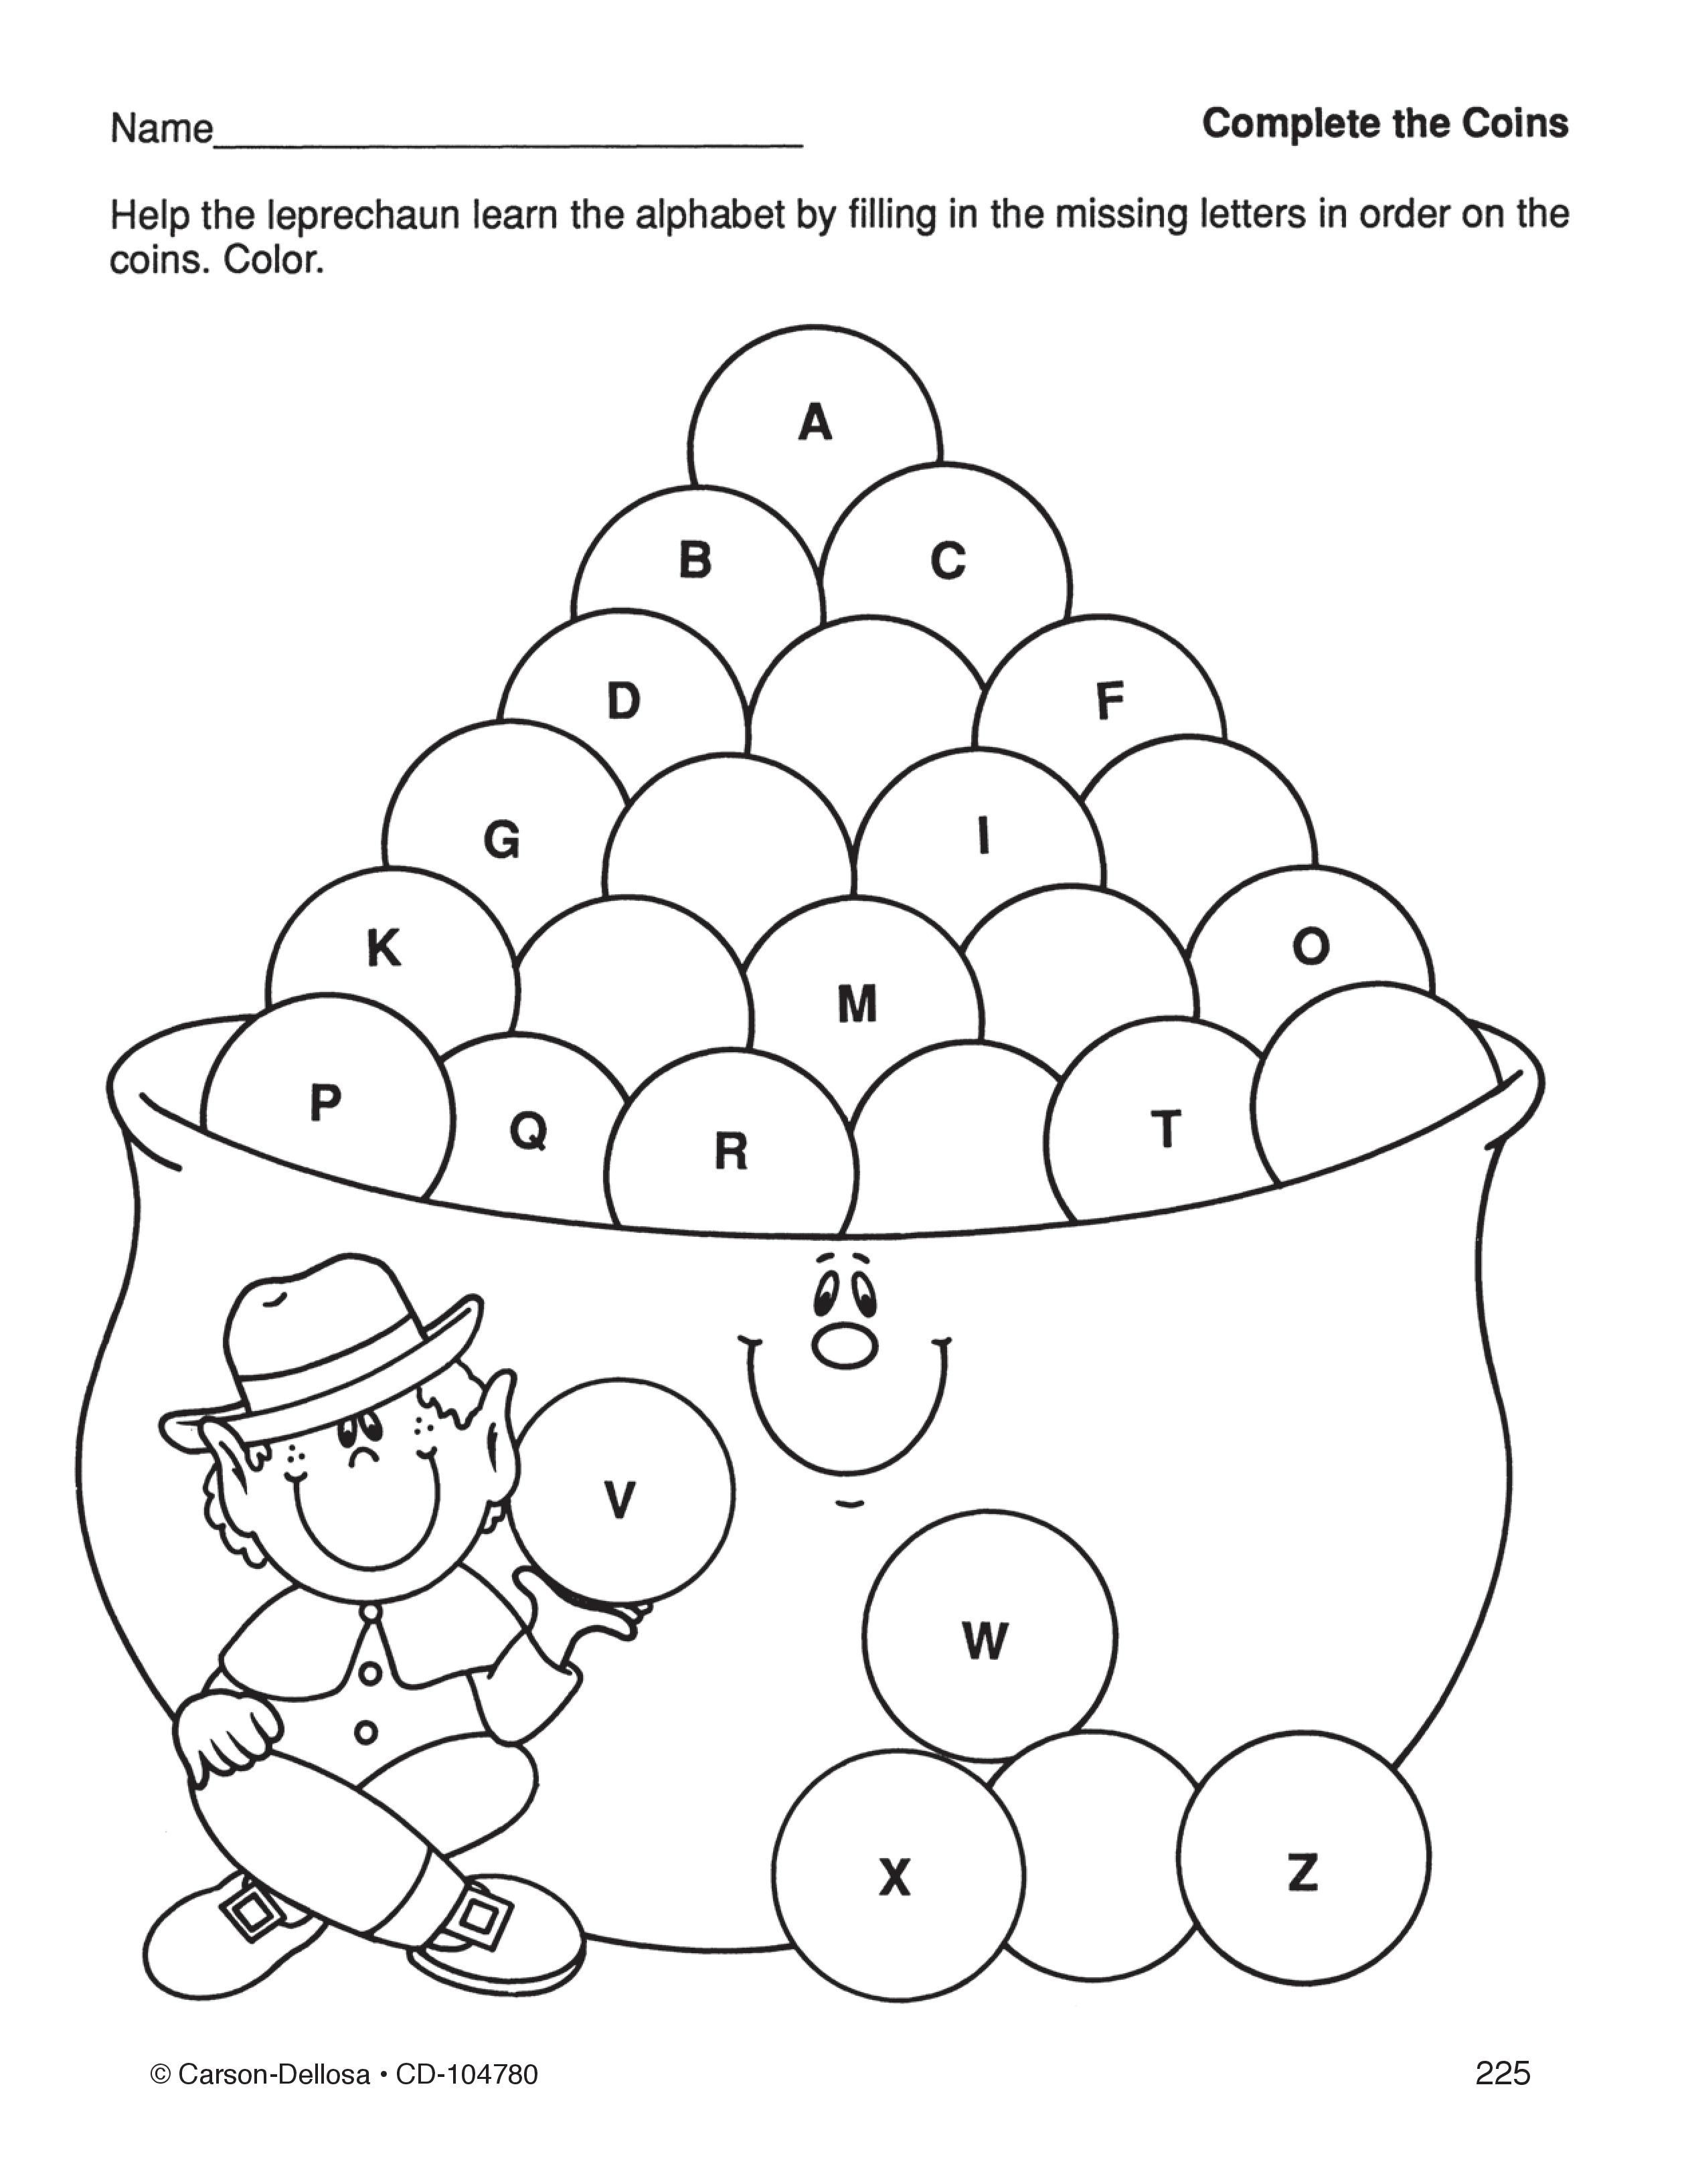 This Learning Leprechaun Is Ready To Help Your Toddler